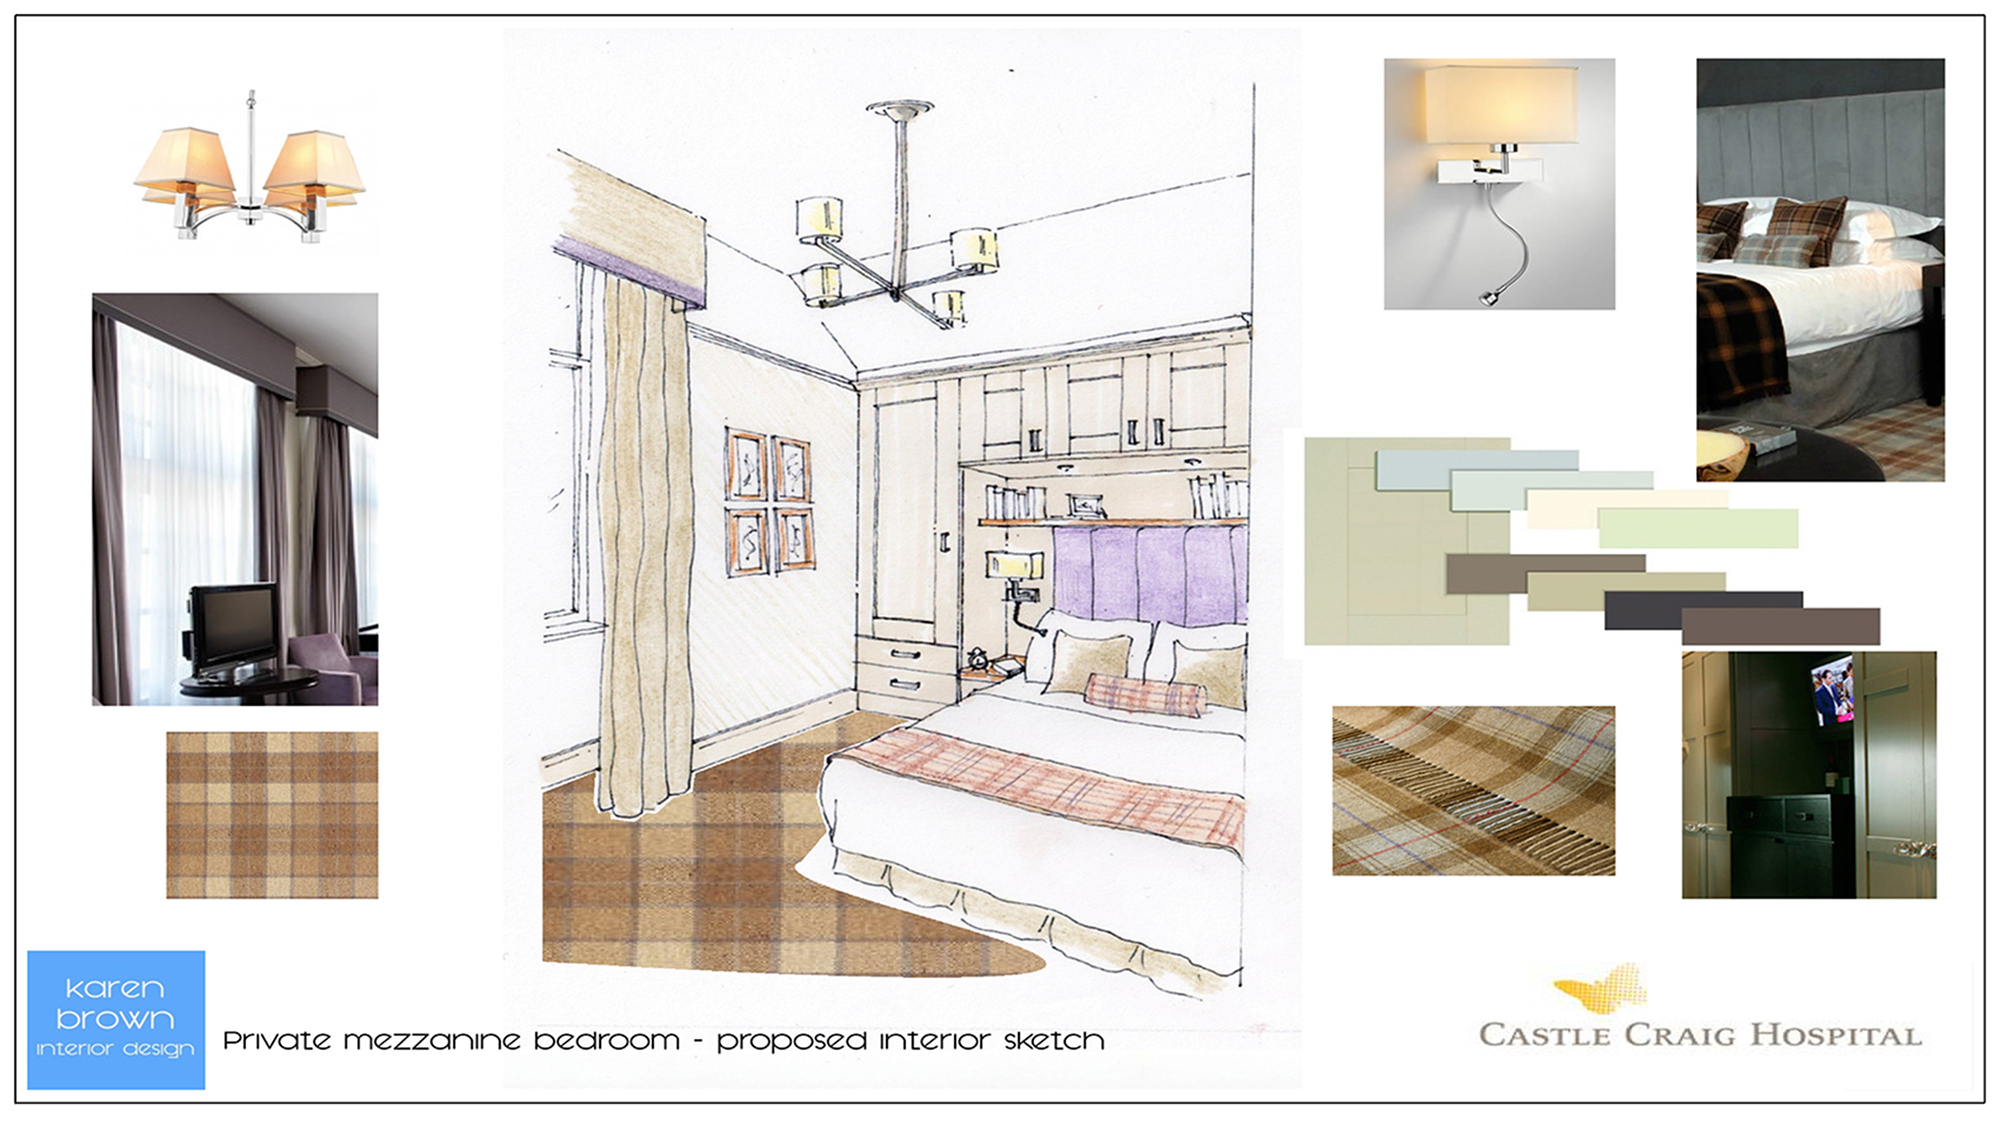 Clients Home Design Powerpoint on home design spreadsheet, home design templates, home design project, home design youtube, food powerpoint, home design office, home design photography, home design graphics, home design blog, home design facebook, home design books, home design tv, home design web pages, home design games, home design animation, holiday powerpoint, home design design, home design inspiration, home design ipad, engineering powerpoint,